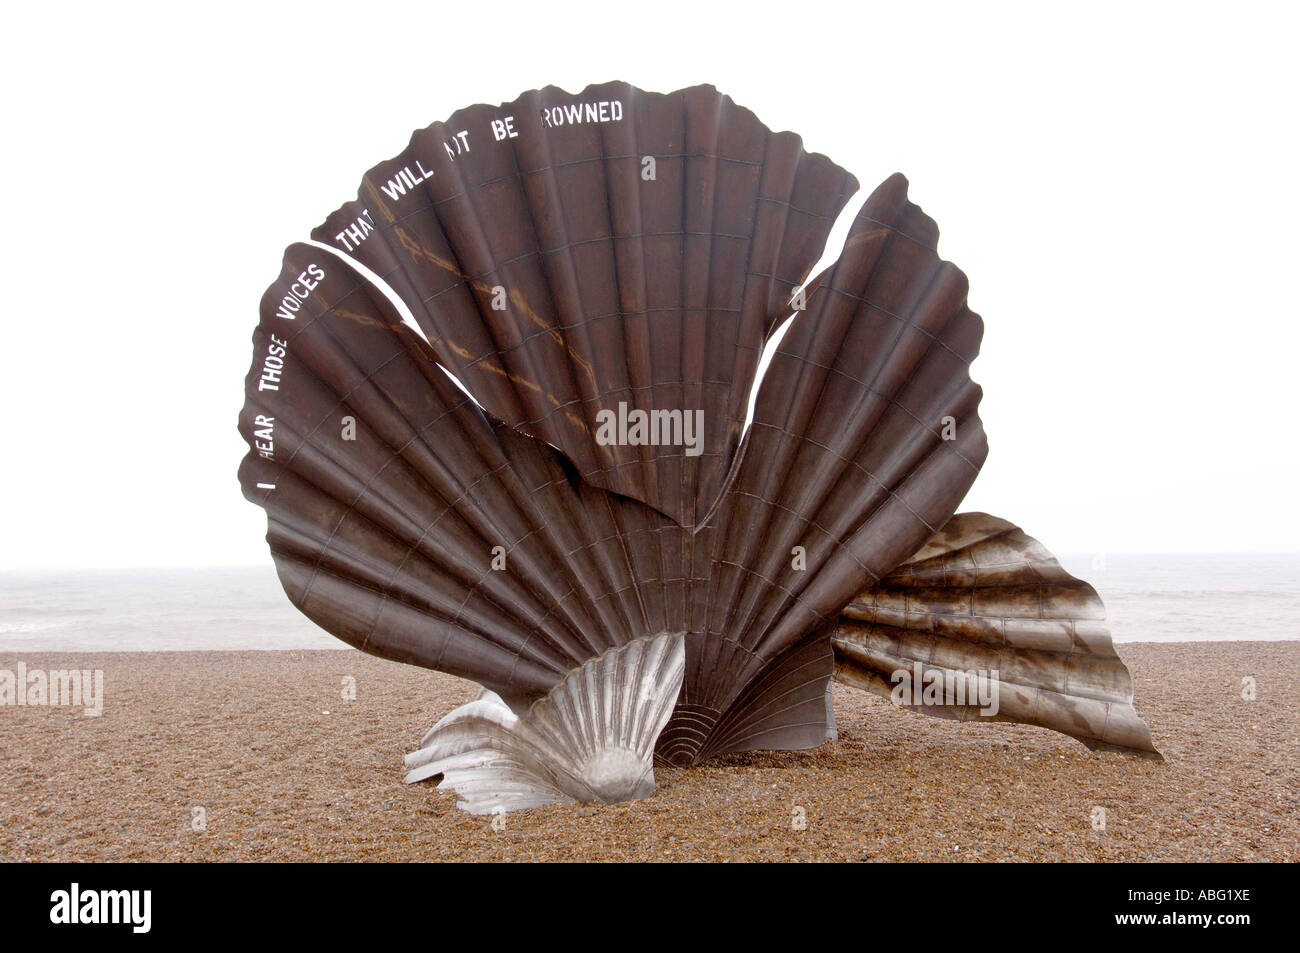 Scallop Sculpture,  Aldeburgh, Suffolk, Beach, England - Stock Image